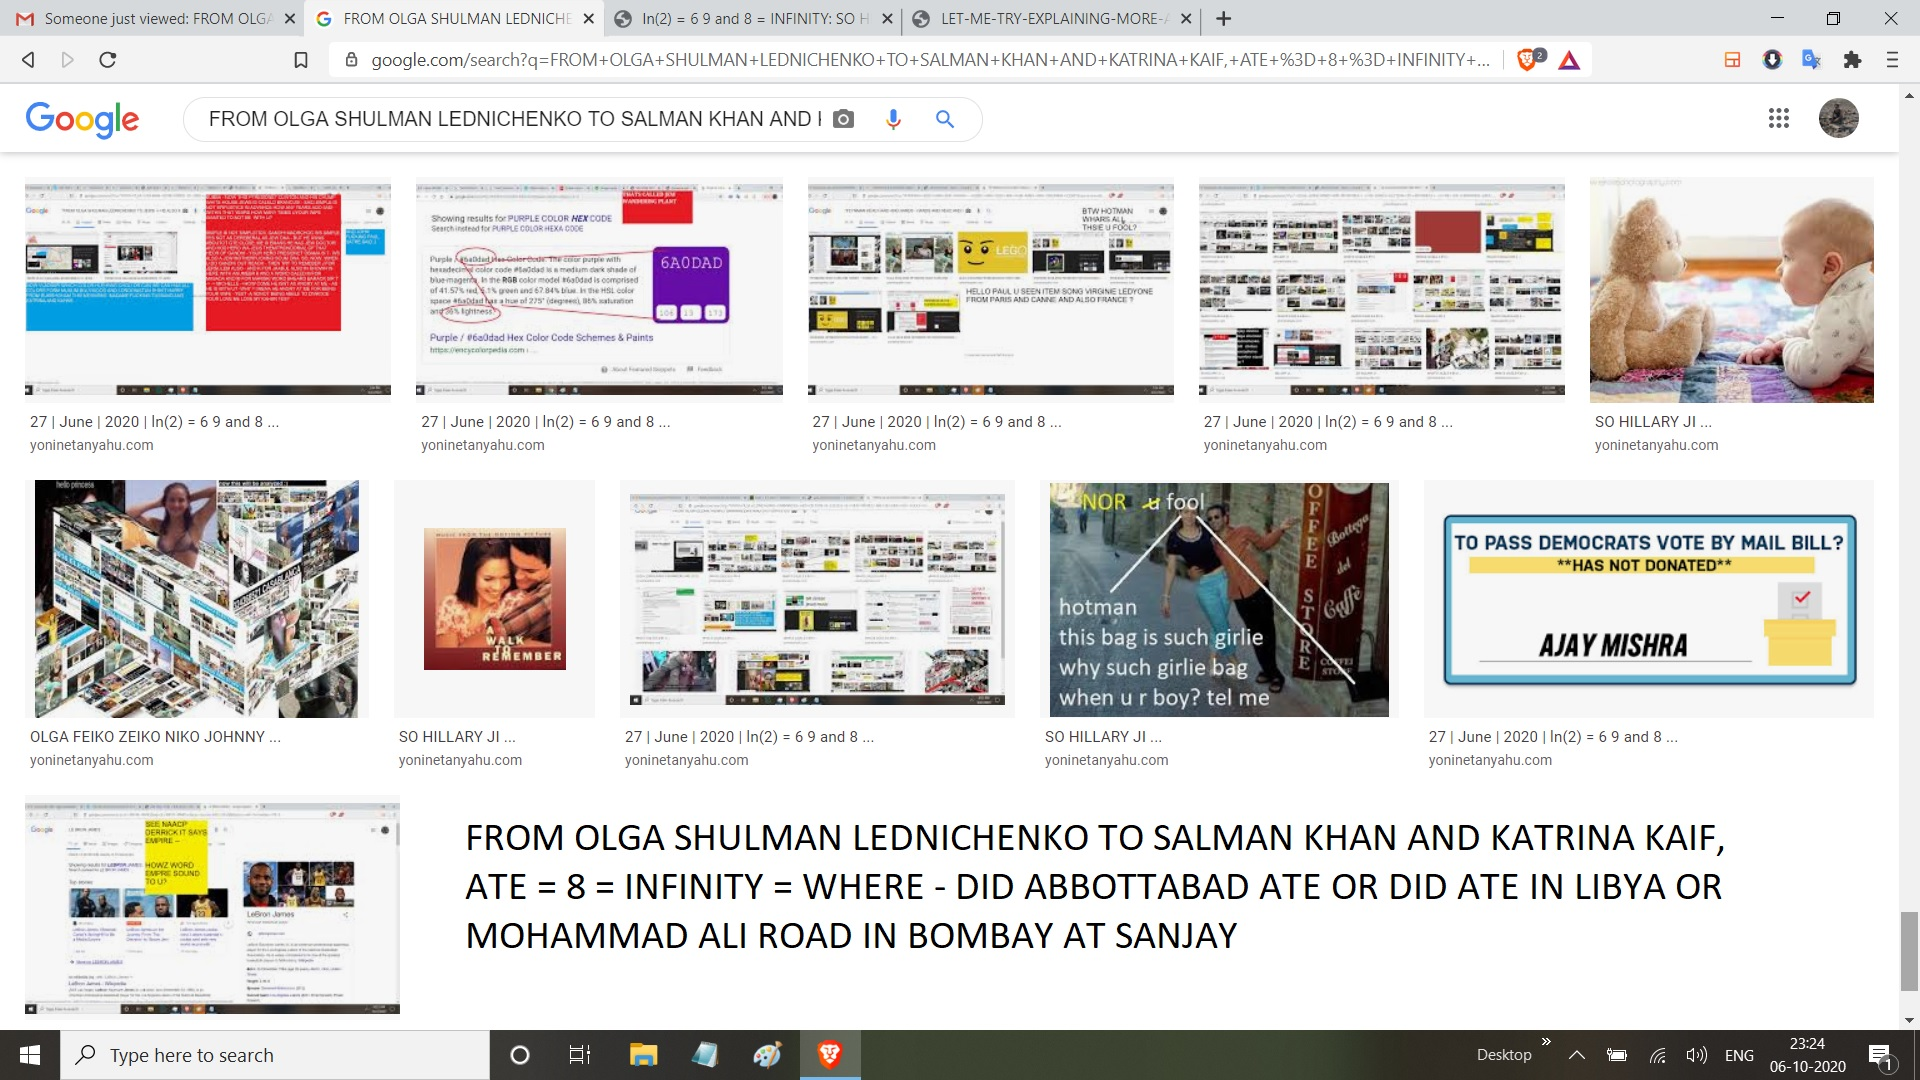 FROM OLGA SHULMAN LEDNICHENKO TO SALMAN KHAN AND KATRINA KAIF, ATE = 8 = INFINITY = WHERE - DID ABBOTTABAD ATE OR DID ATE IN LIBYA OR MOHAMMAD ALI ROAD IN BOMBAY AT SANJAY